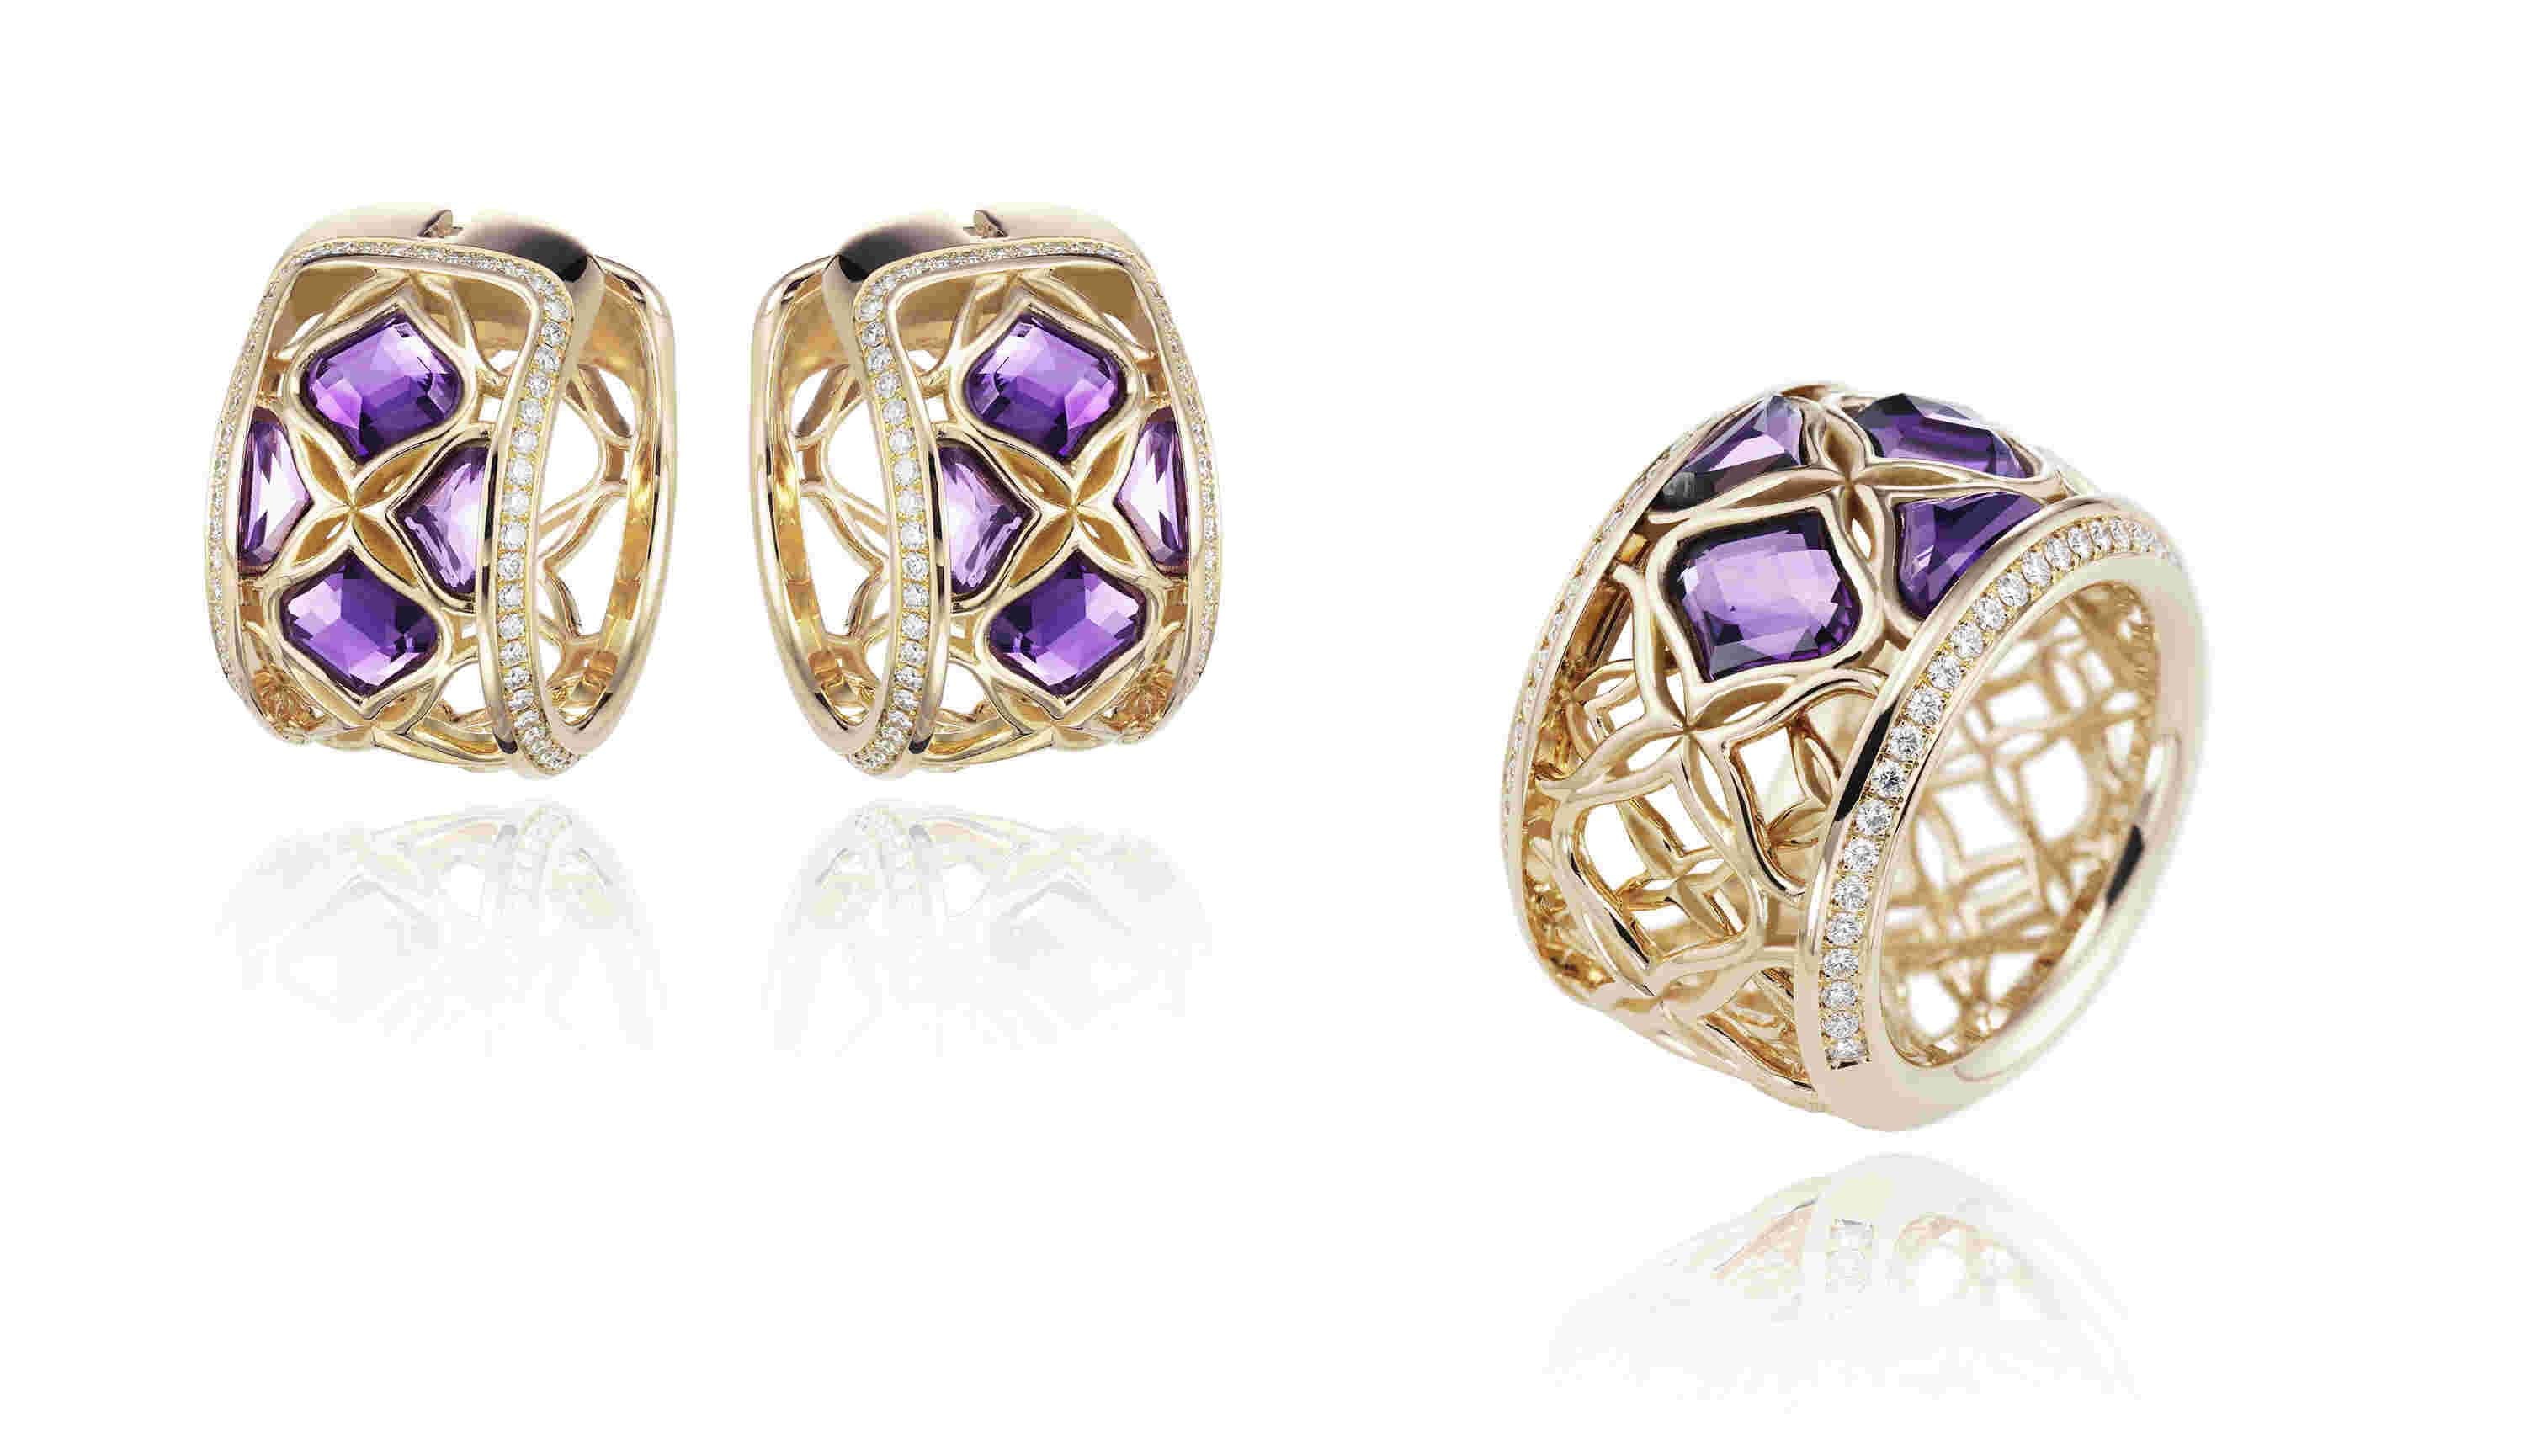 Chopard Imperiale Jewellery Collection in Rose Gold